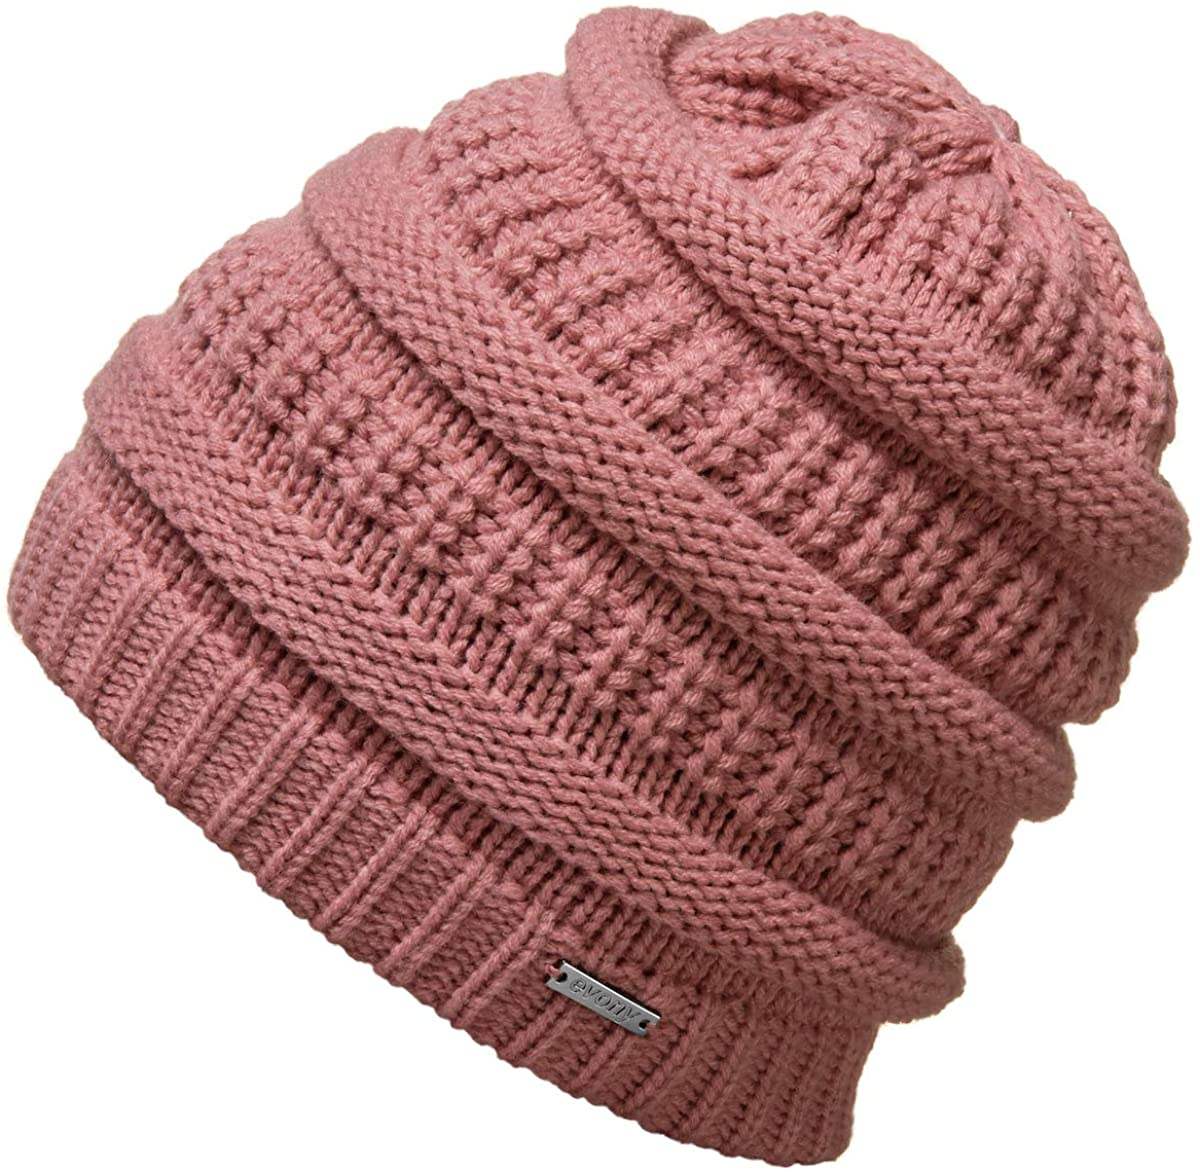 Revony Knitted Beanie Hat for Women & Men - Deliciously Soft Chunky Beanie